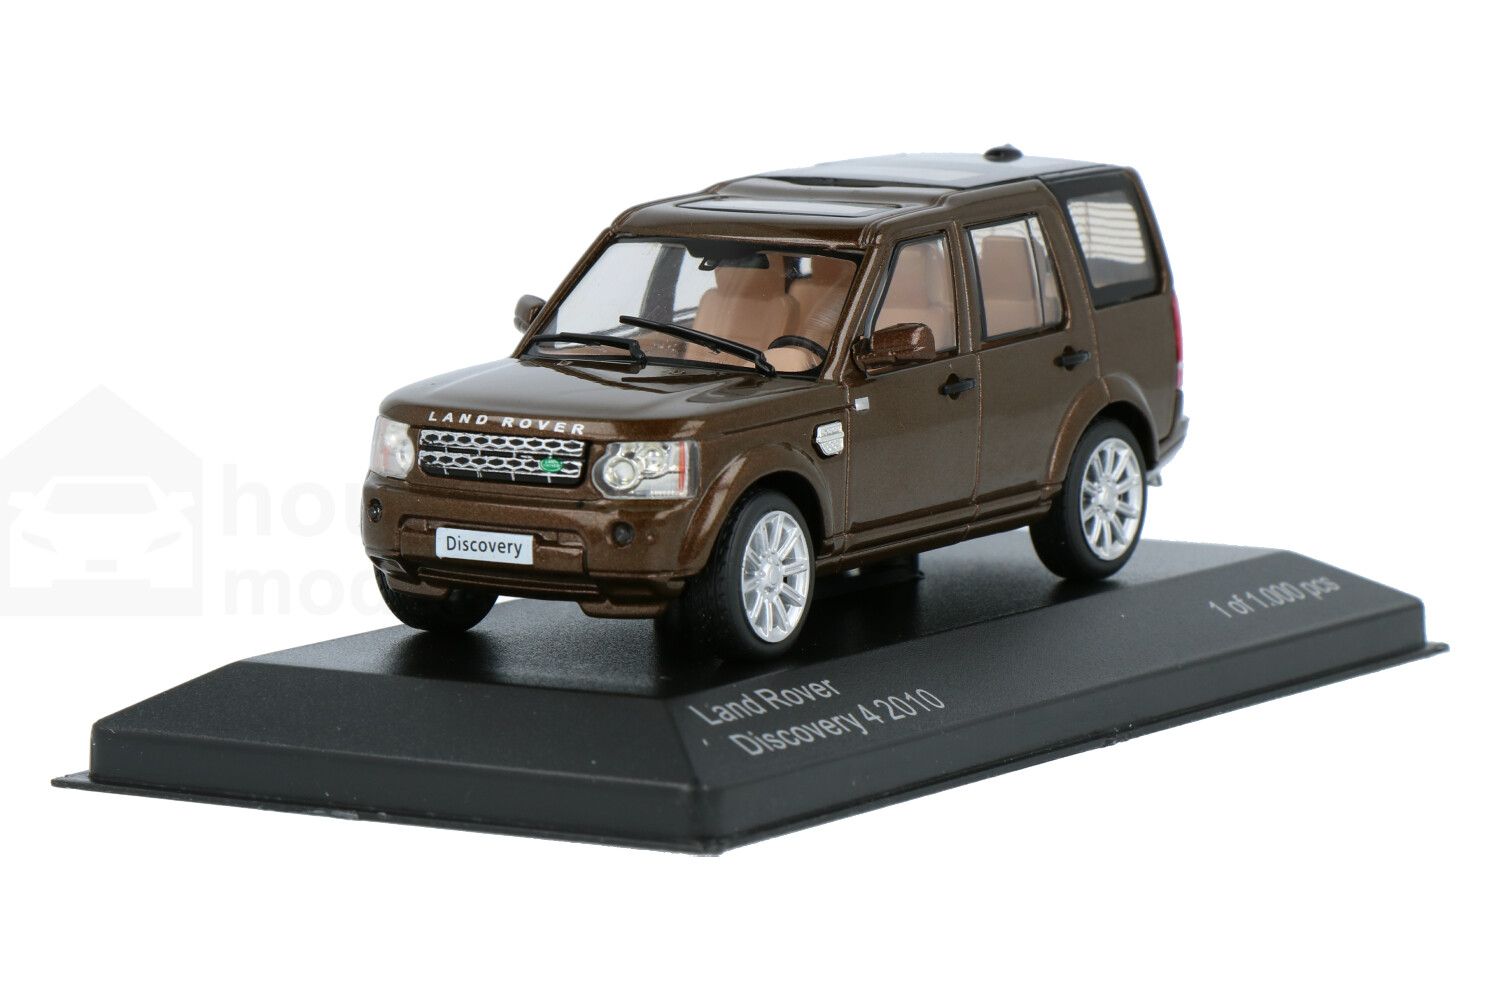 Land Rover Discovery 4 - Modelauto schaal 1:43